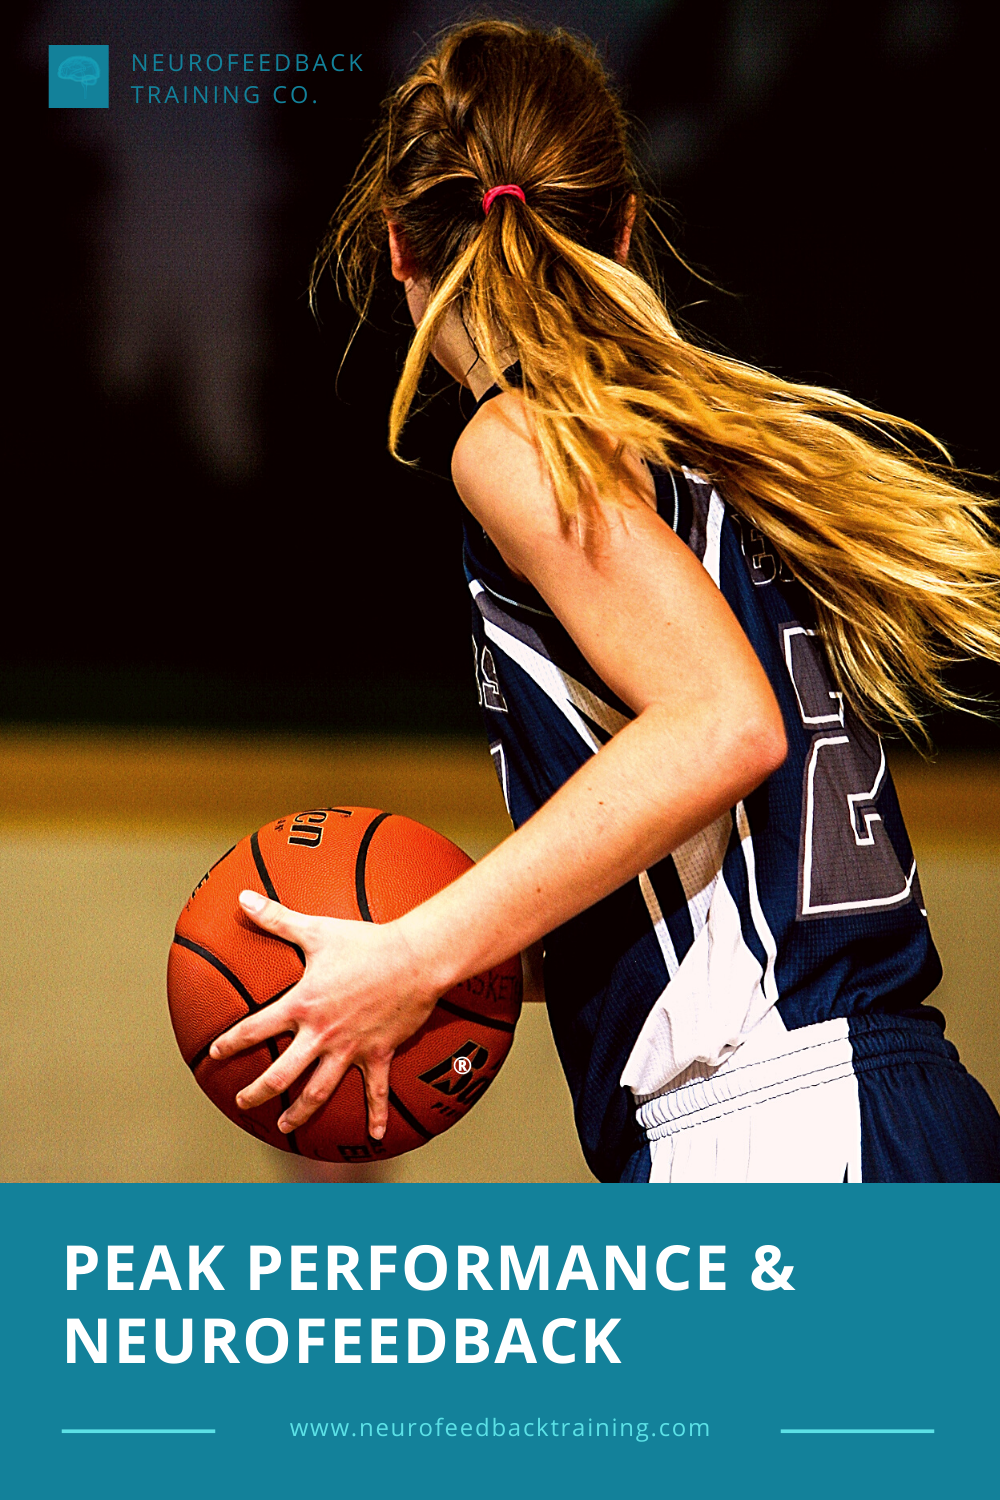 Peak Performance For Everyone Experience A Flow State In 2020 Basketball Hairstyles Basketball Girls Best Cardio Workout